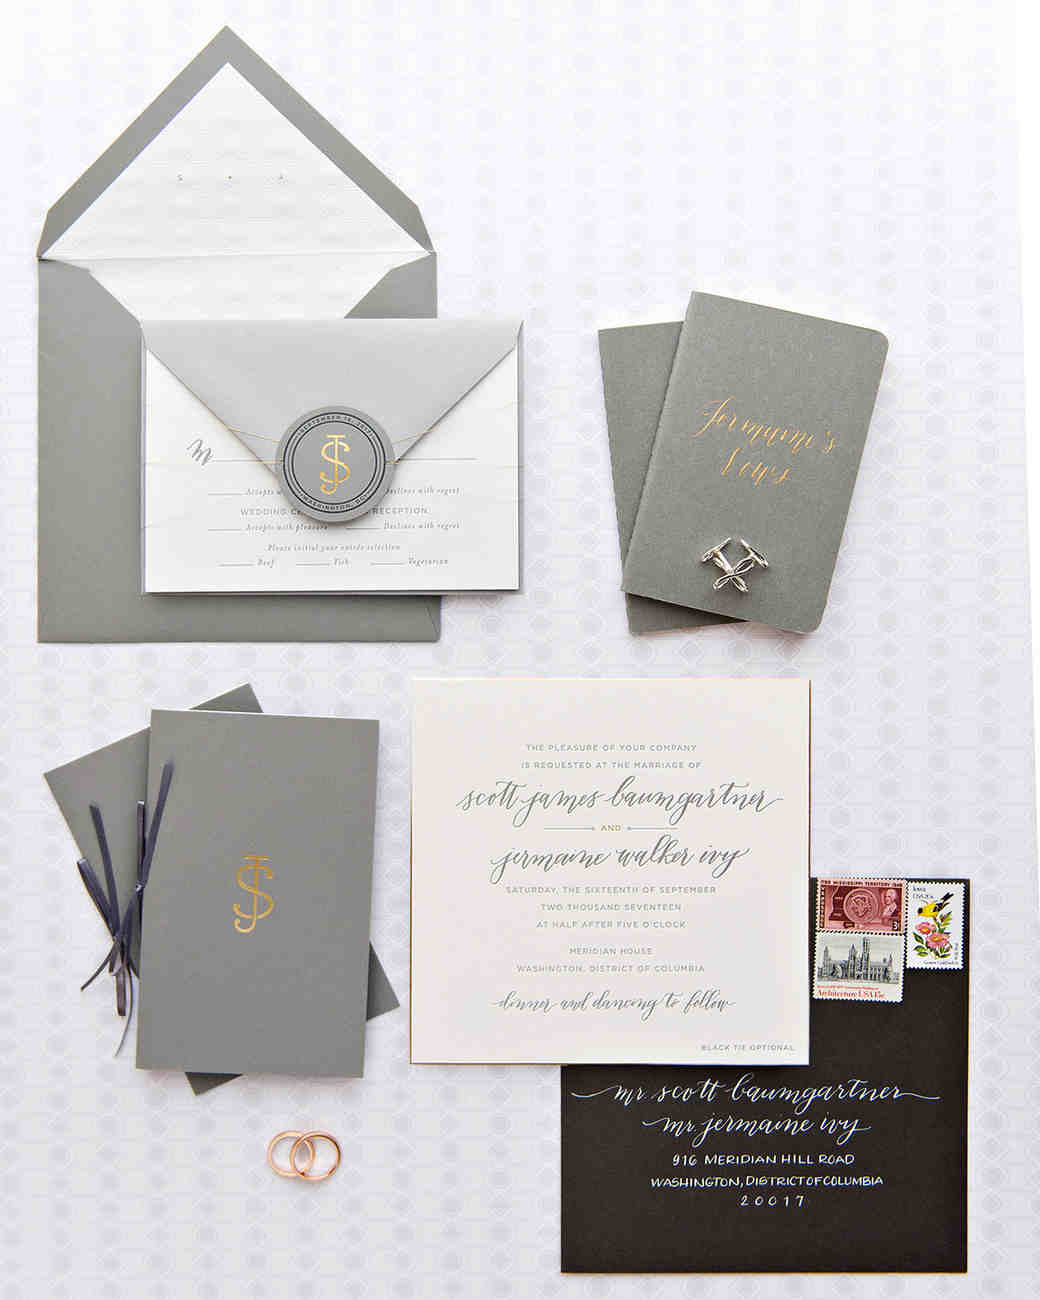 jermaine scott wedding dc stationery suite